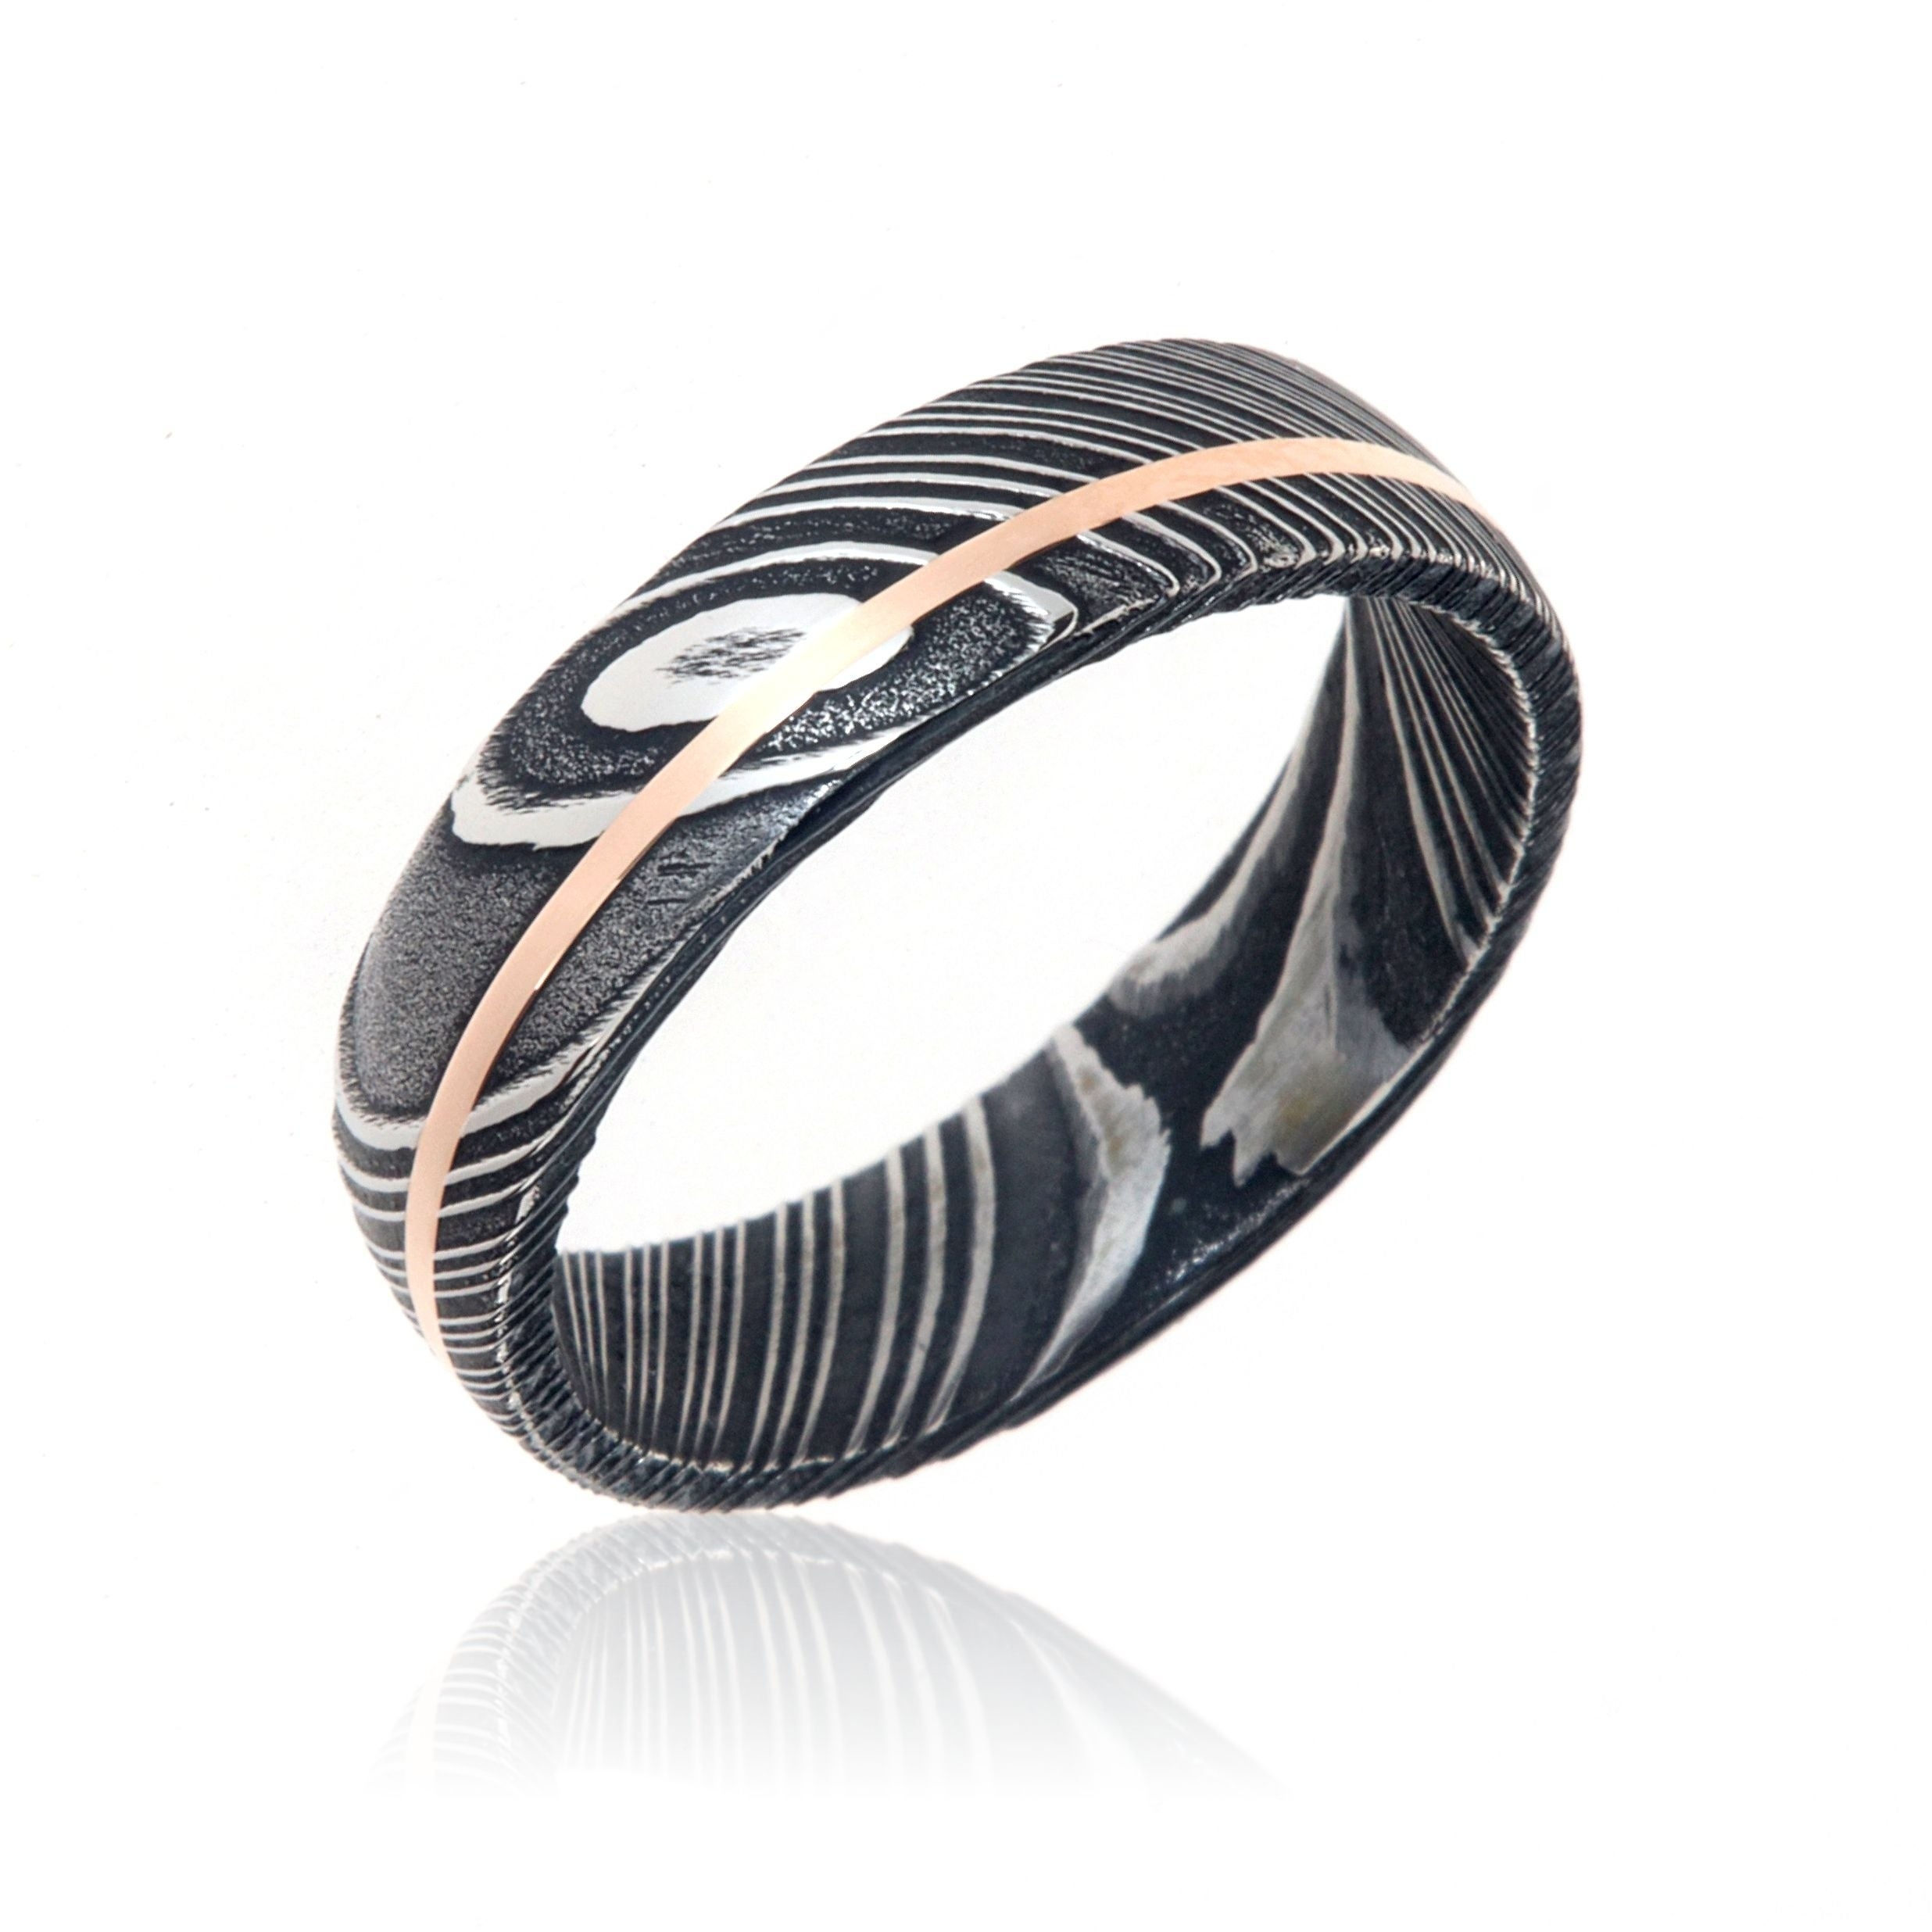 Damascus Steel Wedding Bands Usa Made 14k Rose Gold Rings Black Free Shipping Today 22310545